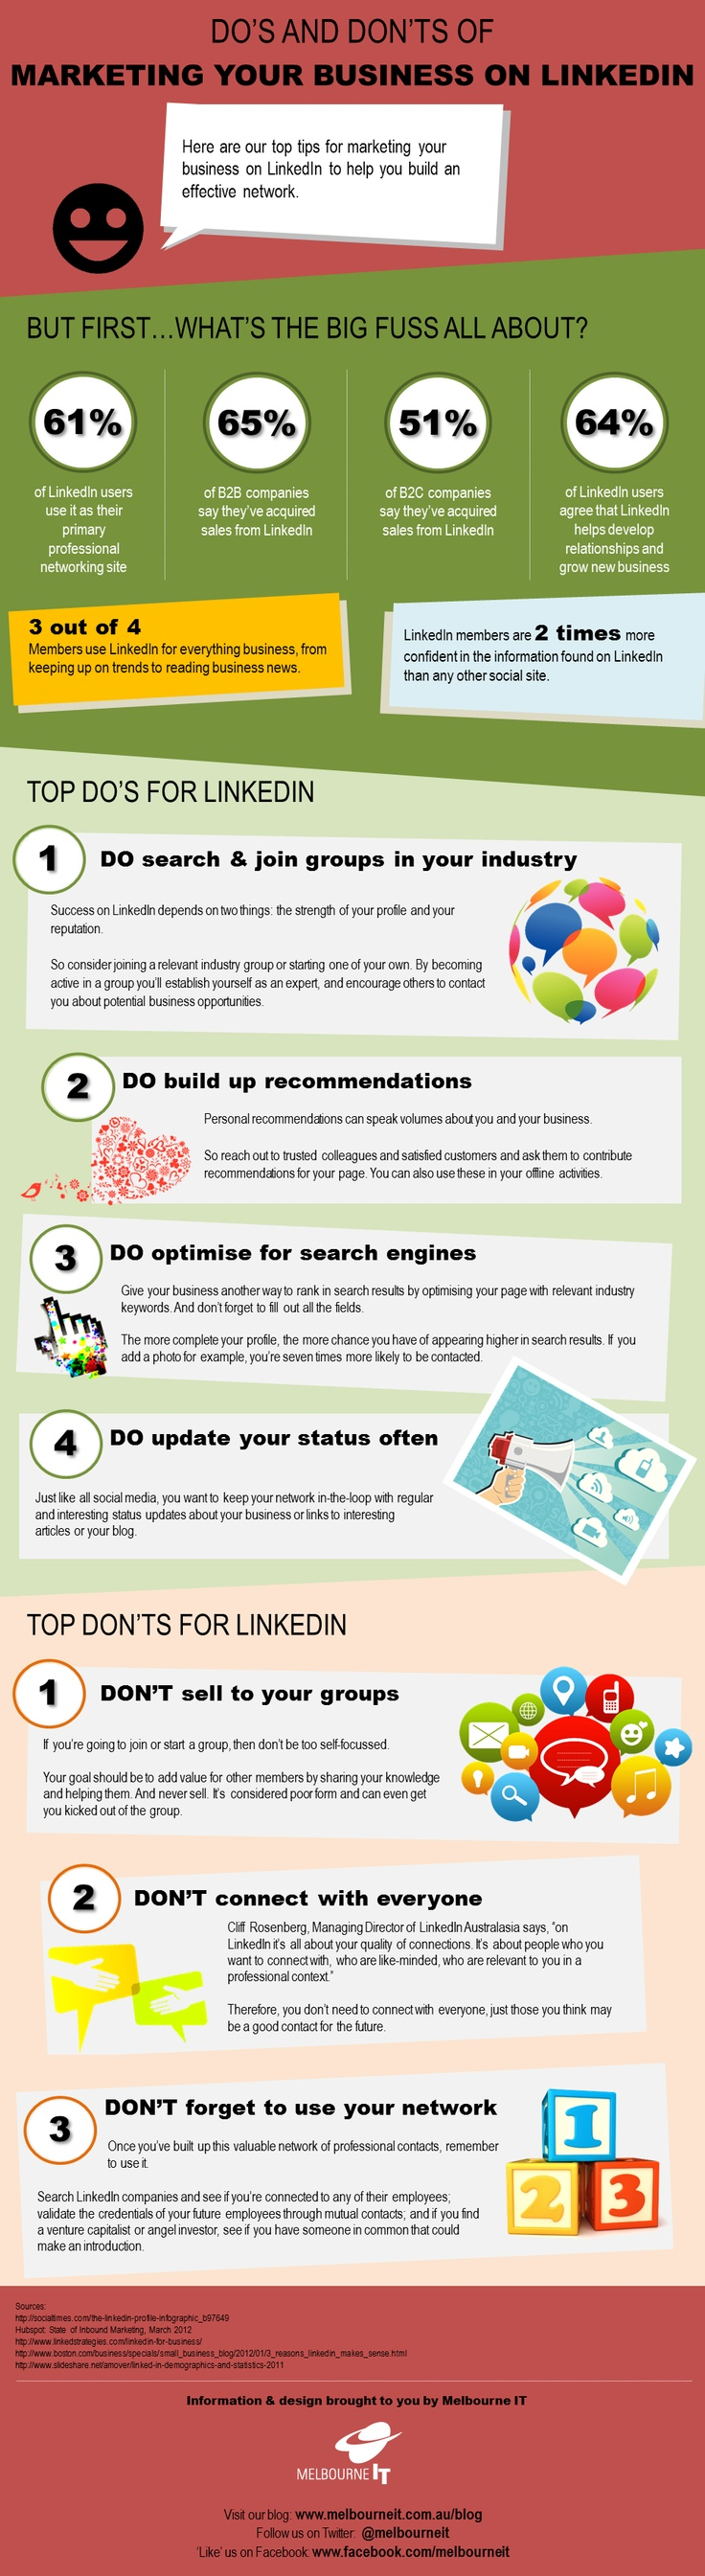 dos and donts of marketing your business on linkedin-MIT